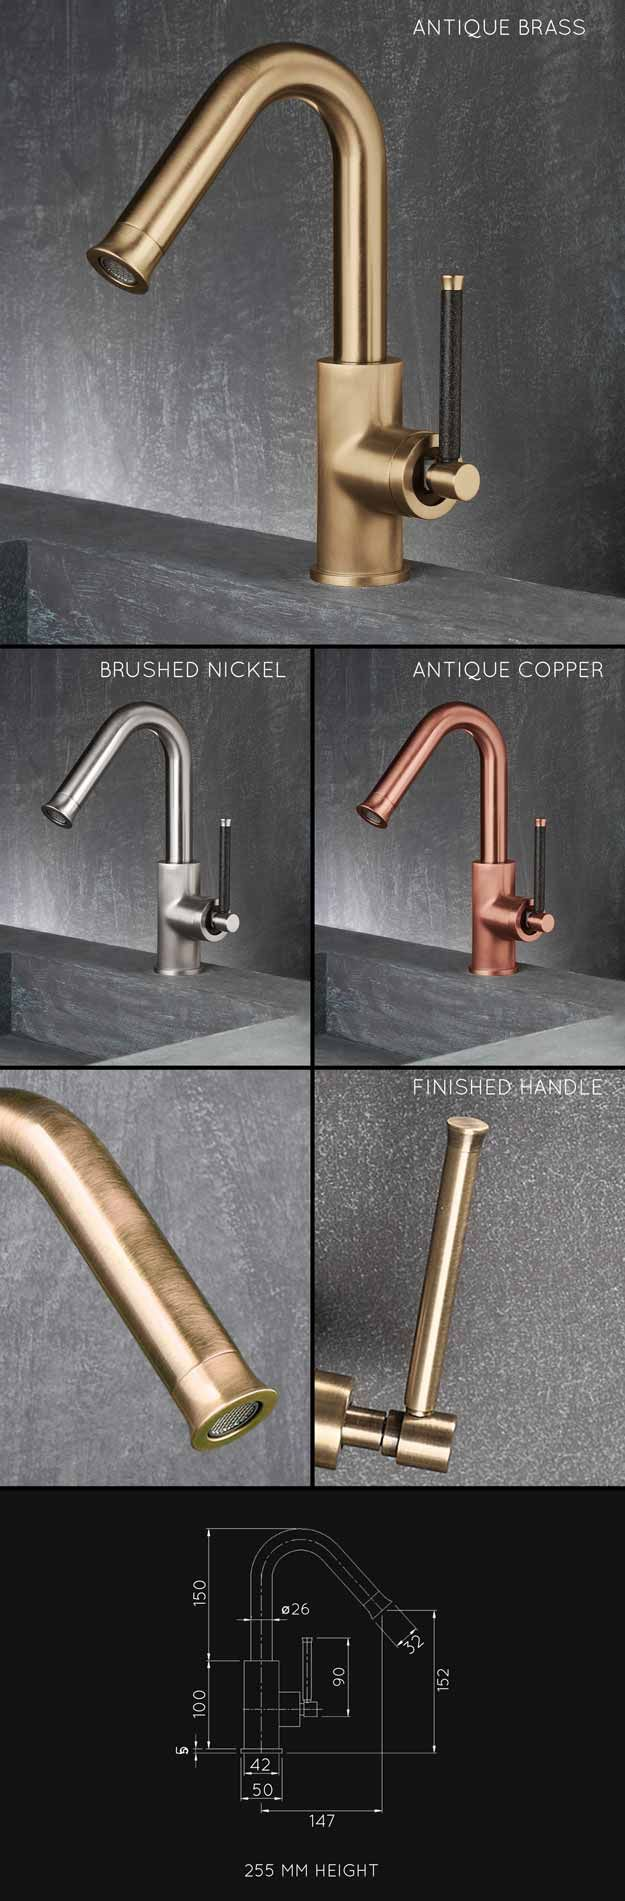 Brass sink taps bathroom - Suppliers Of Brass Taps Including Antique Brass Basin Mixers Bath Taps And Matching Shower Heads And Fittings